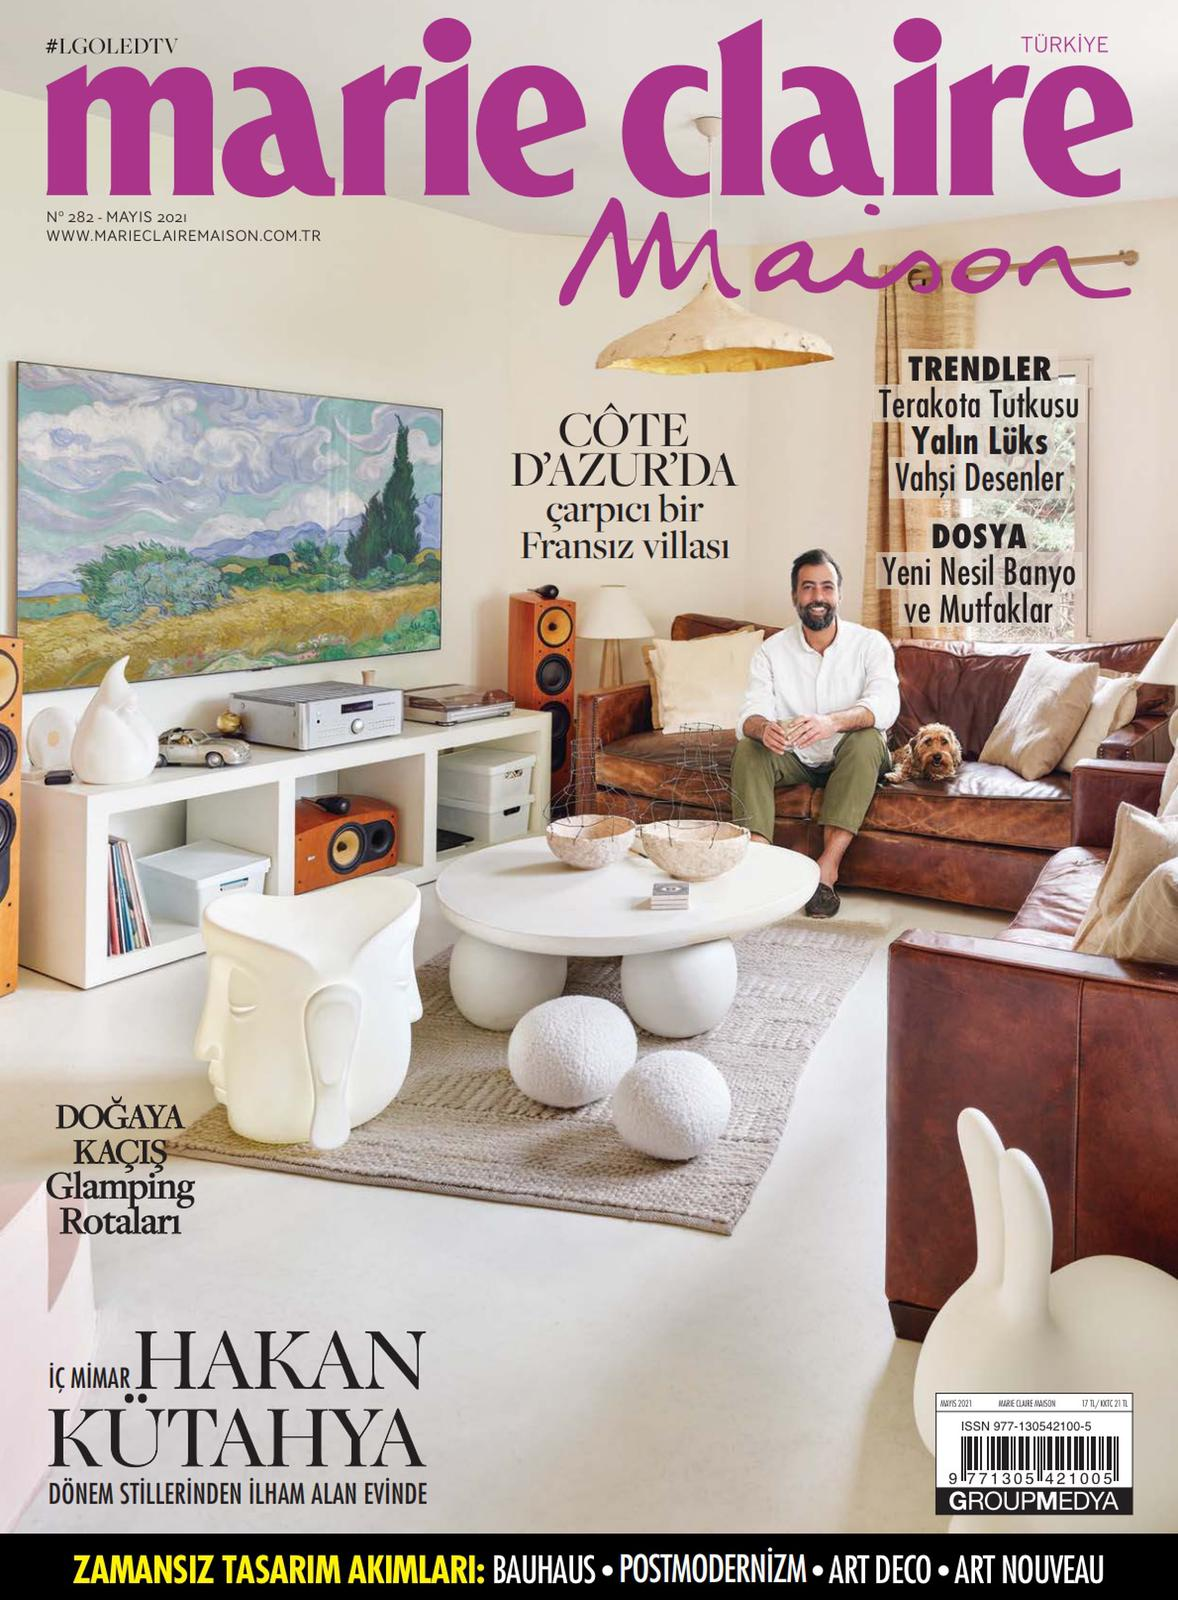 MARIE CLAIRE MAISON / MAY